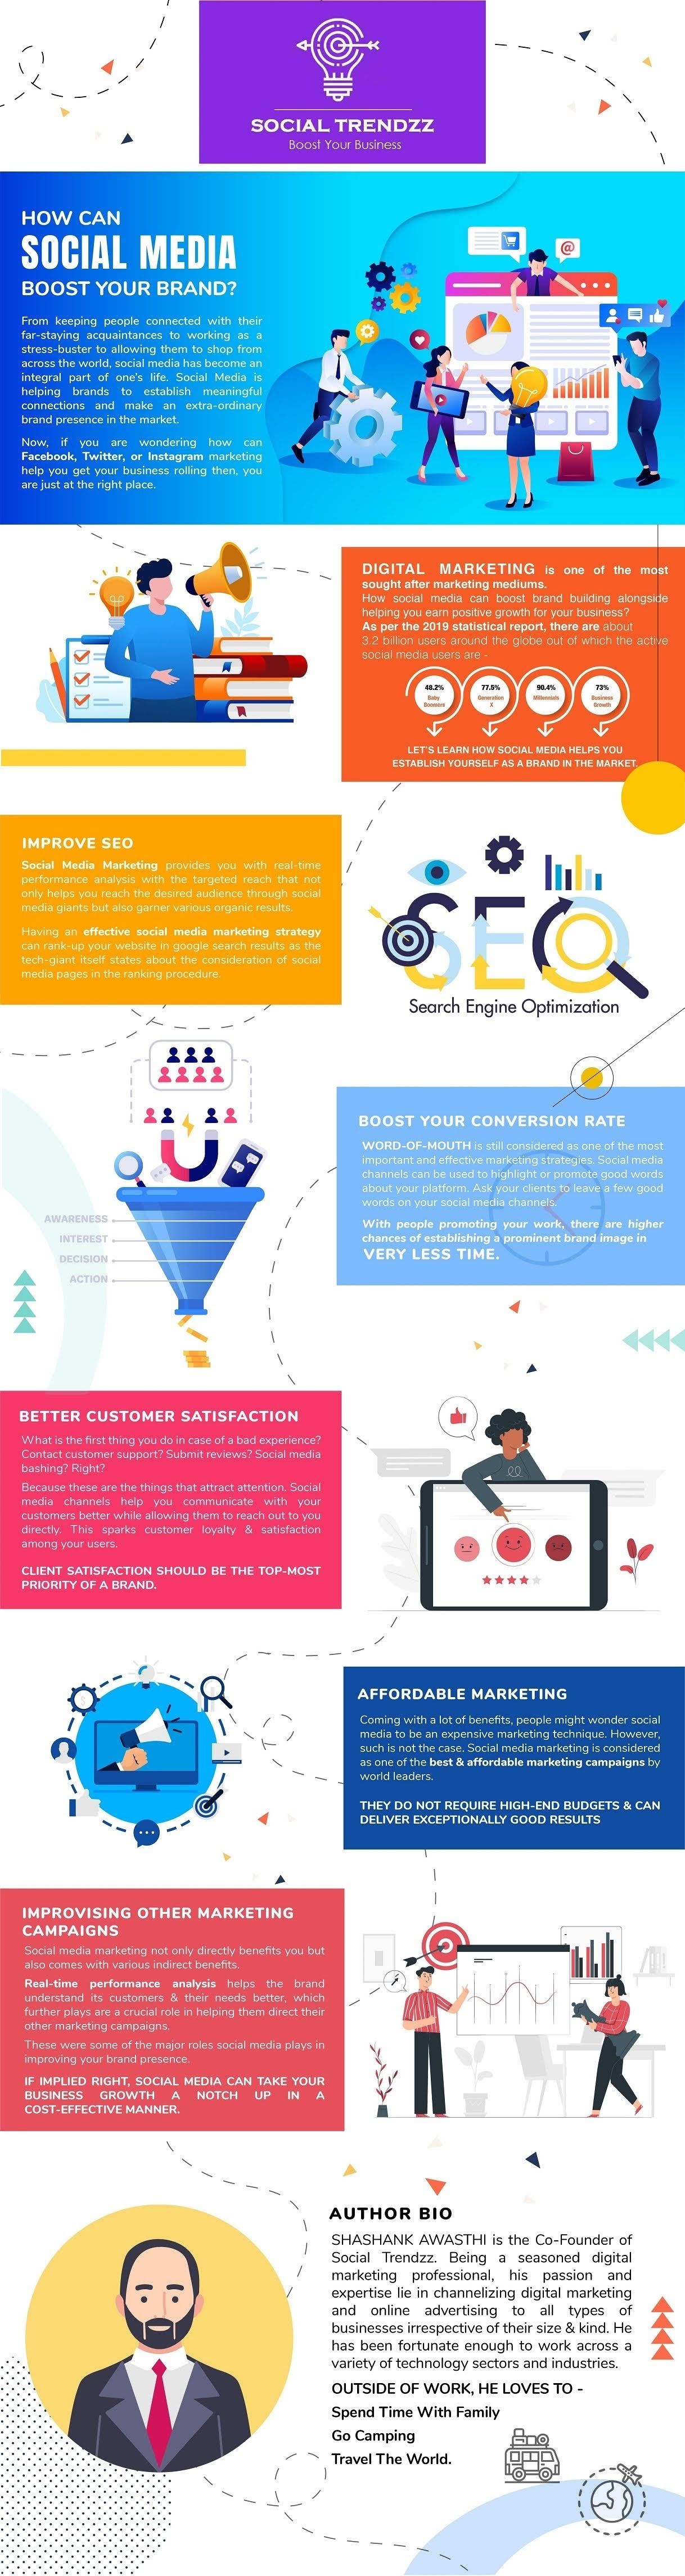 How Can Social Media Boost Your Brand? #infographic